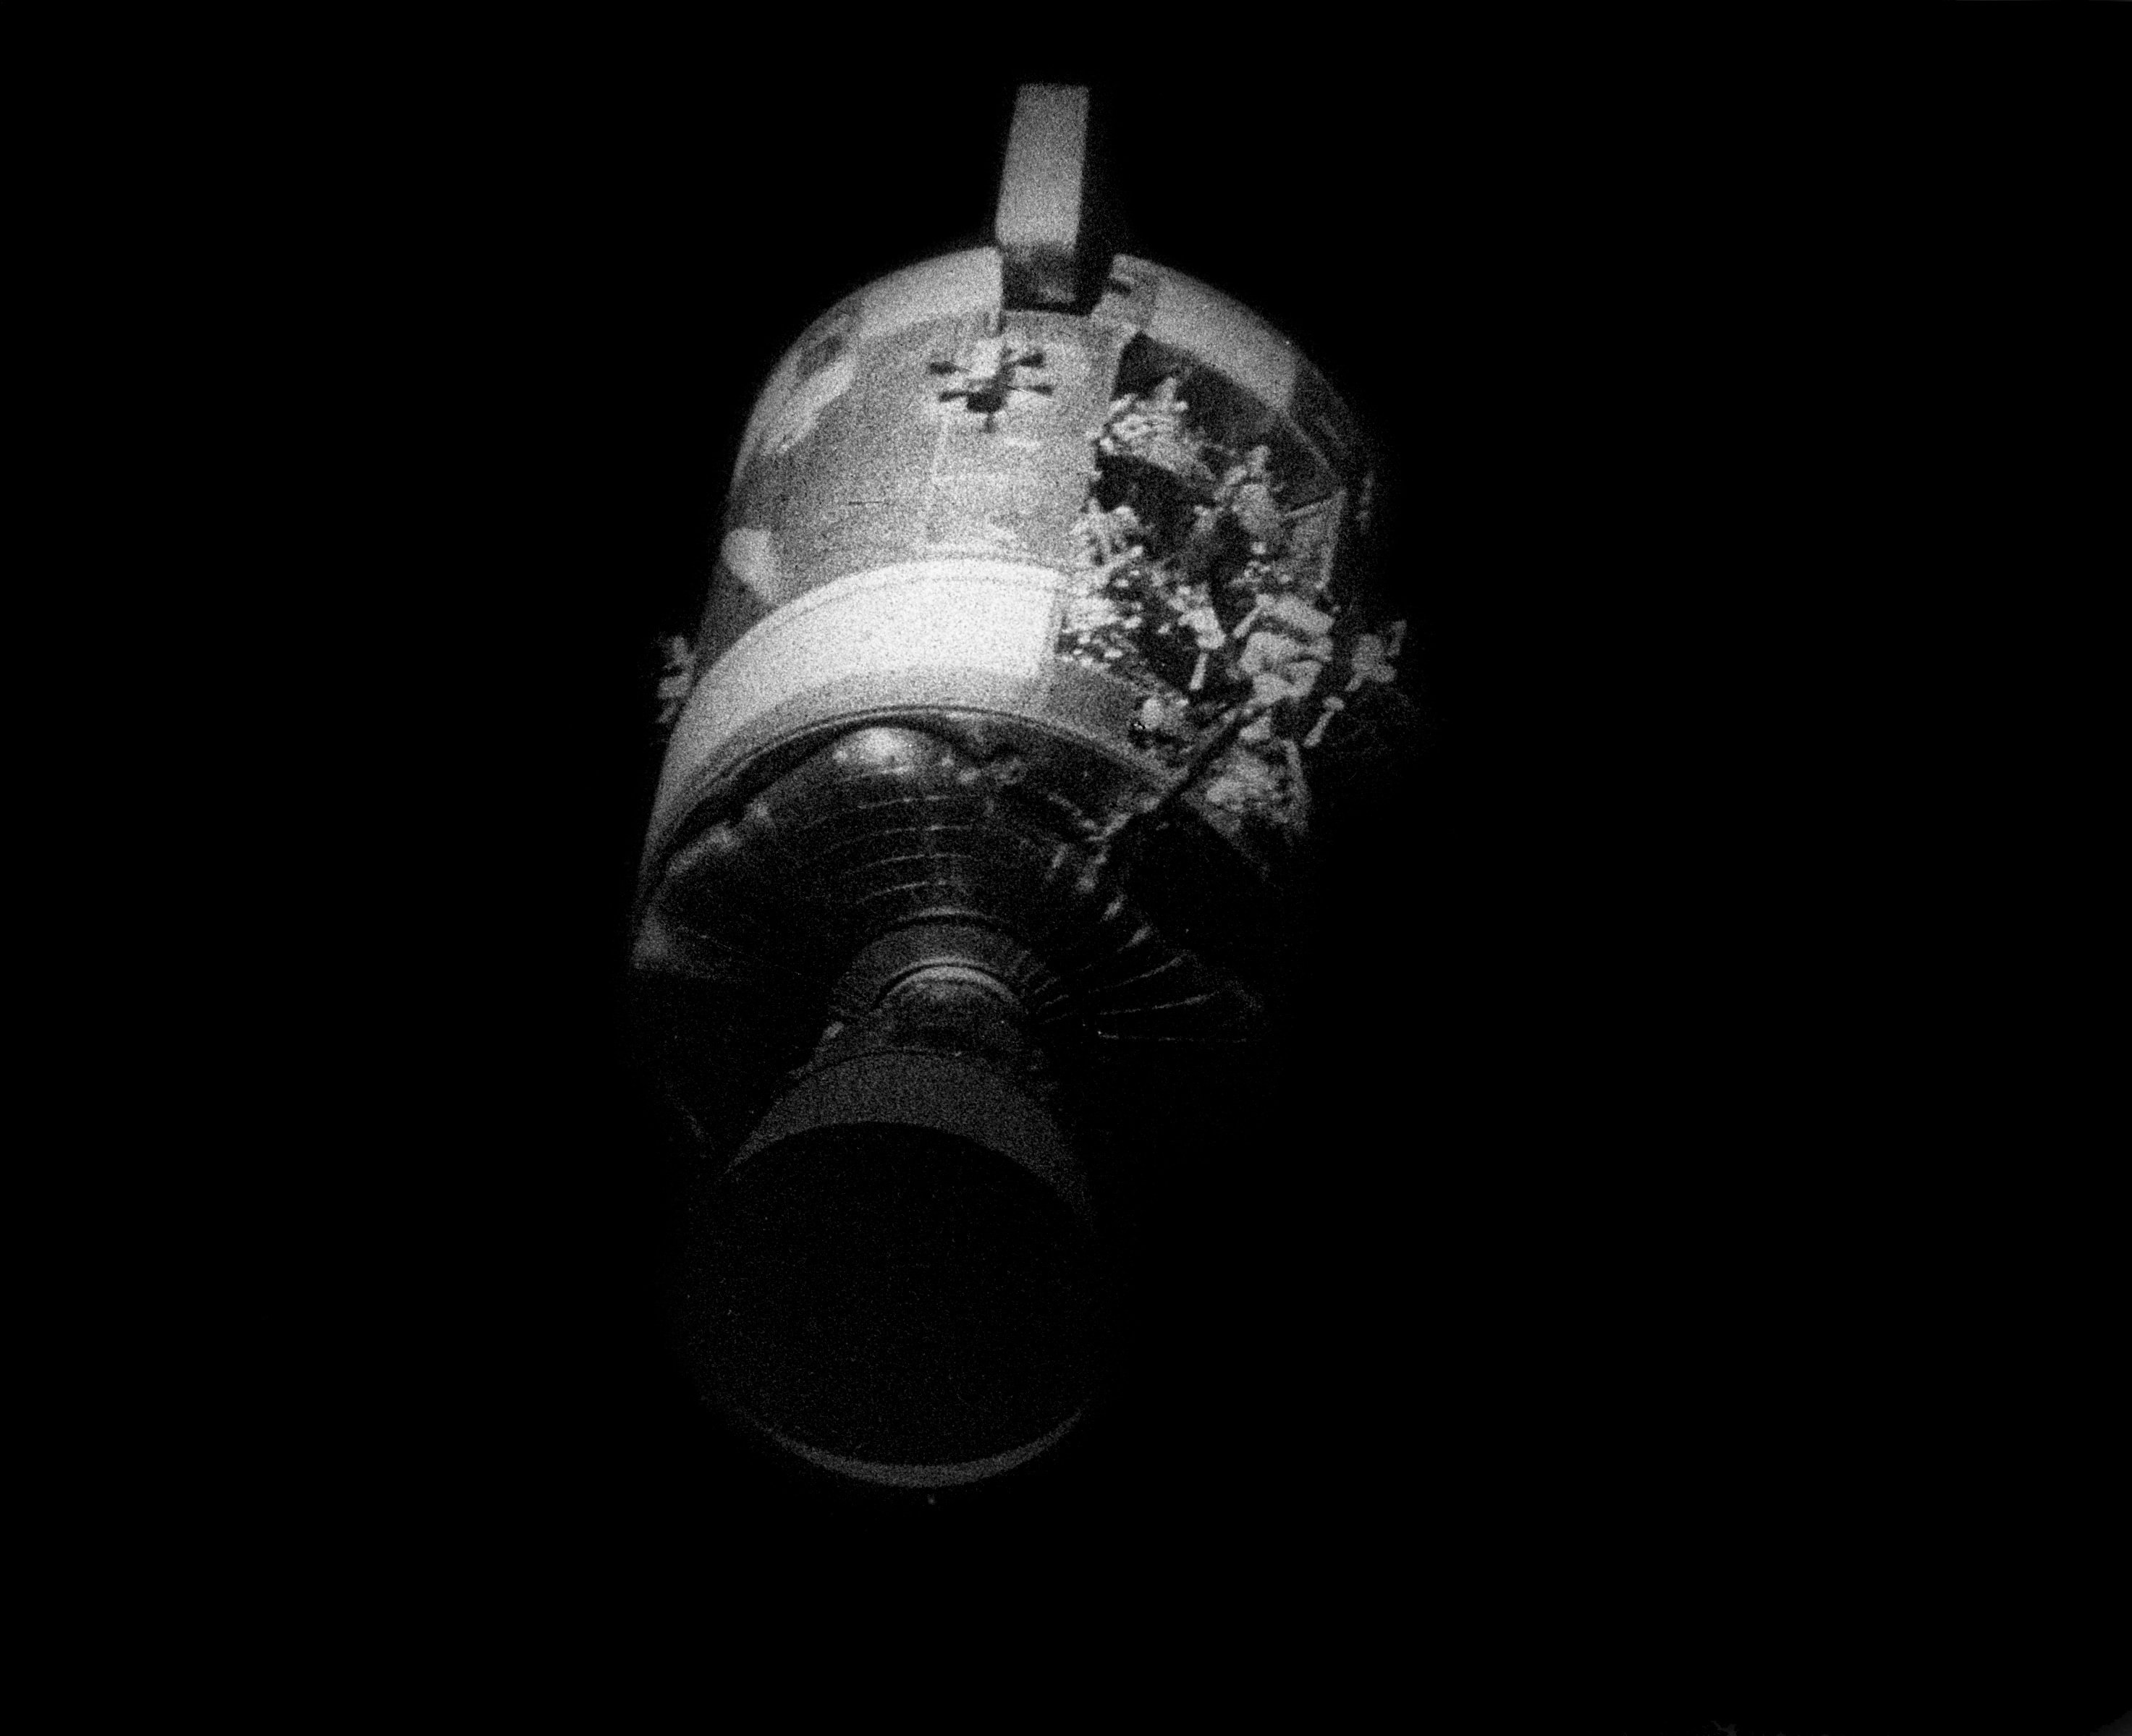 Apollo 13 Pics, Photography Collection